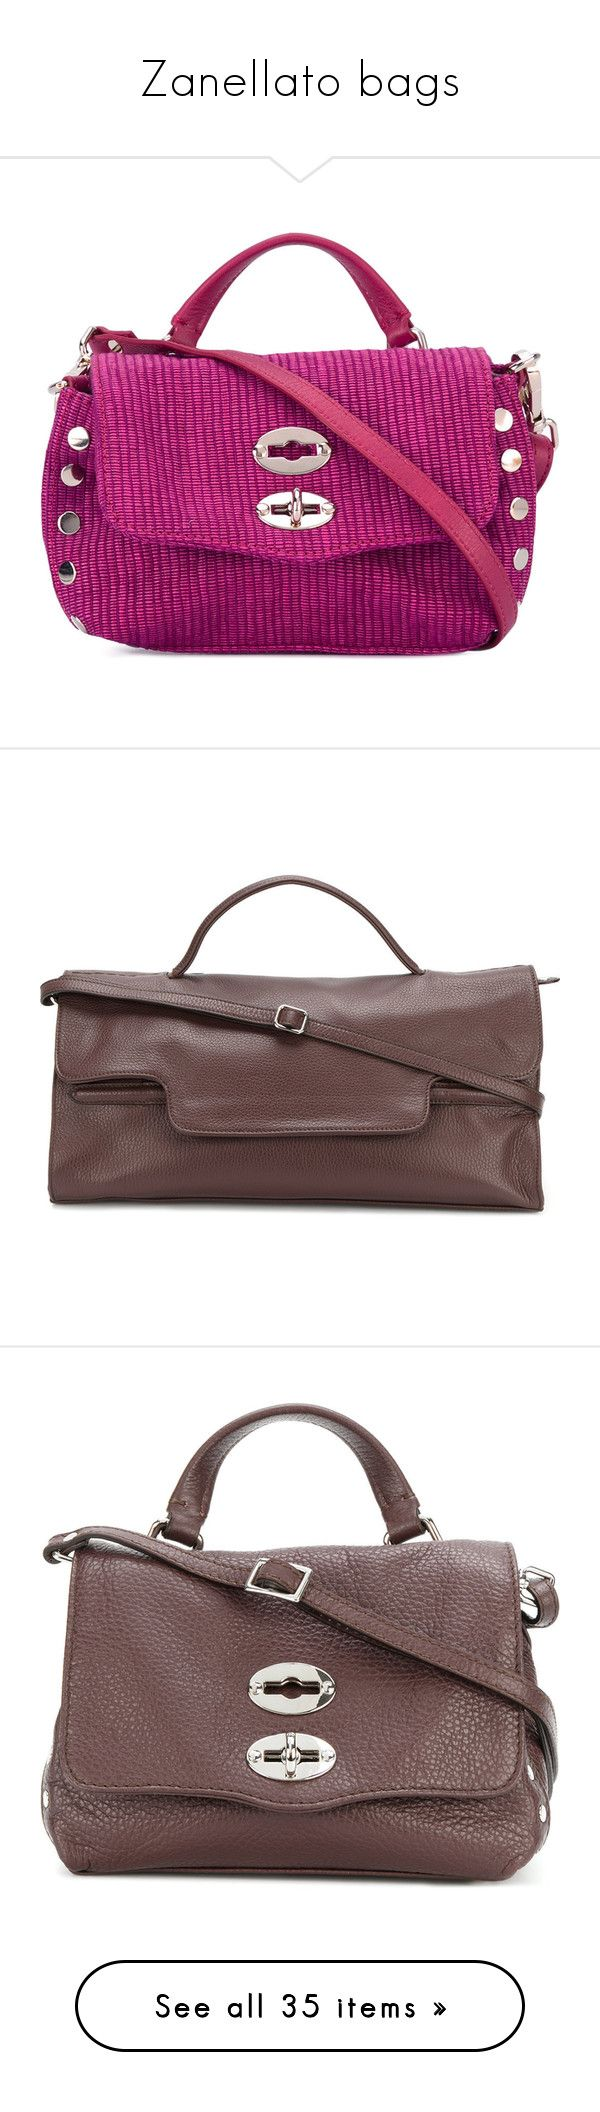 """Zanellato bags"" by cecilialukas ❤ liked on Polyvore featuring bags, handbags, tote bags, purple purse, purple tote bags, purple leather purse, purple leather tote, leather purses, red and brown bag"